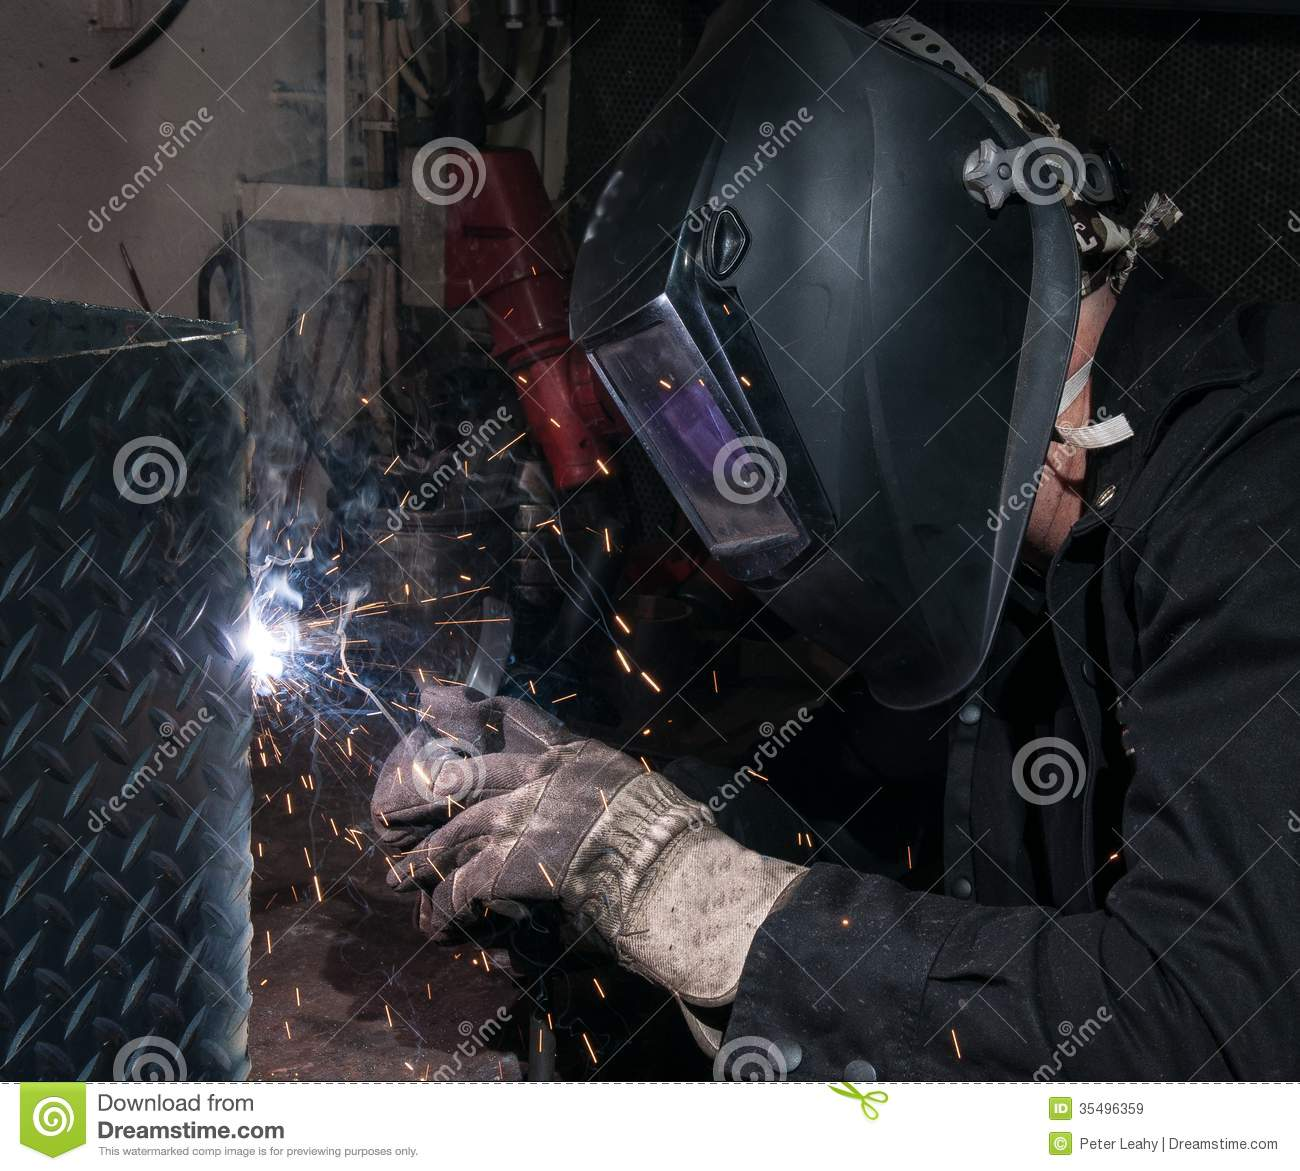 mig welding projects Cool welding projects you can  whether you use a mig or a tig welder, i've got a project for  and start welding many of the welding projects below can be.